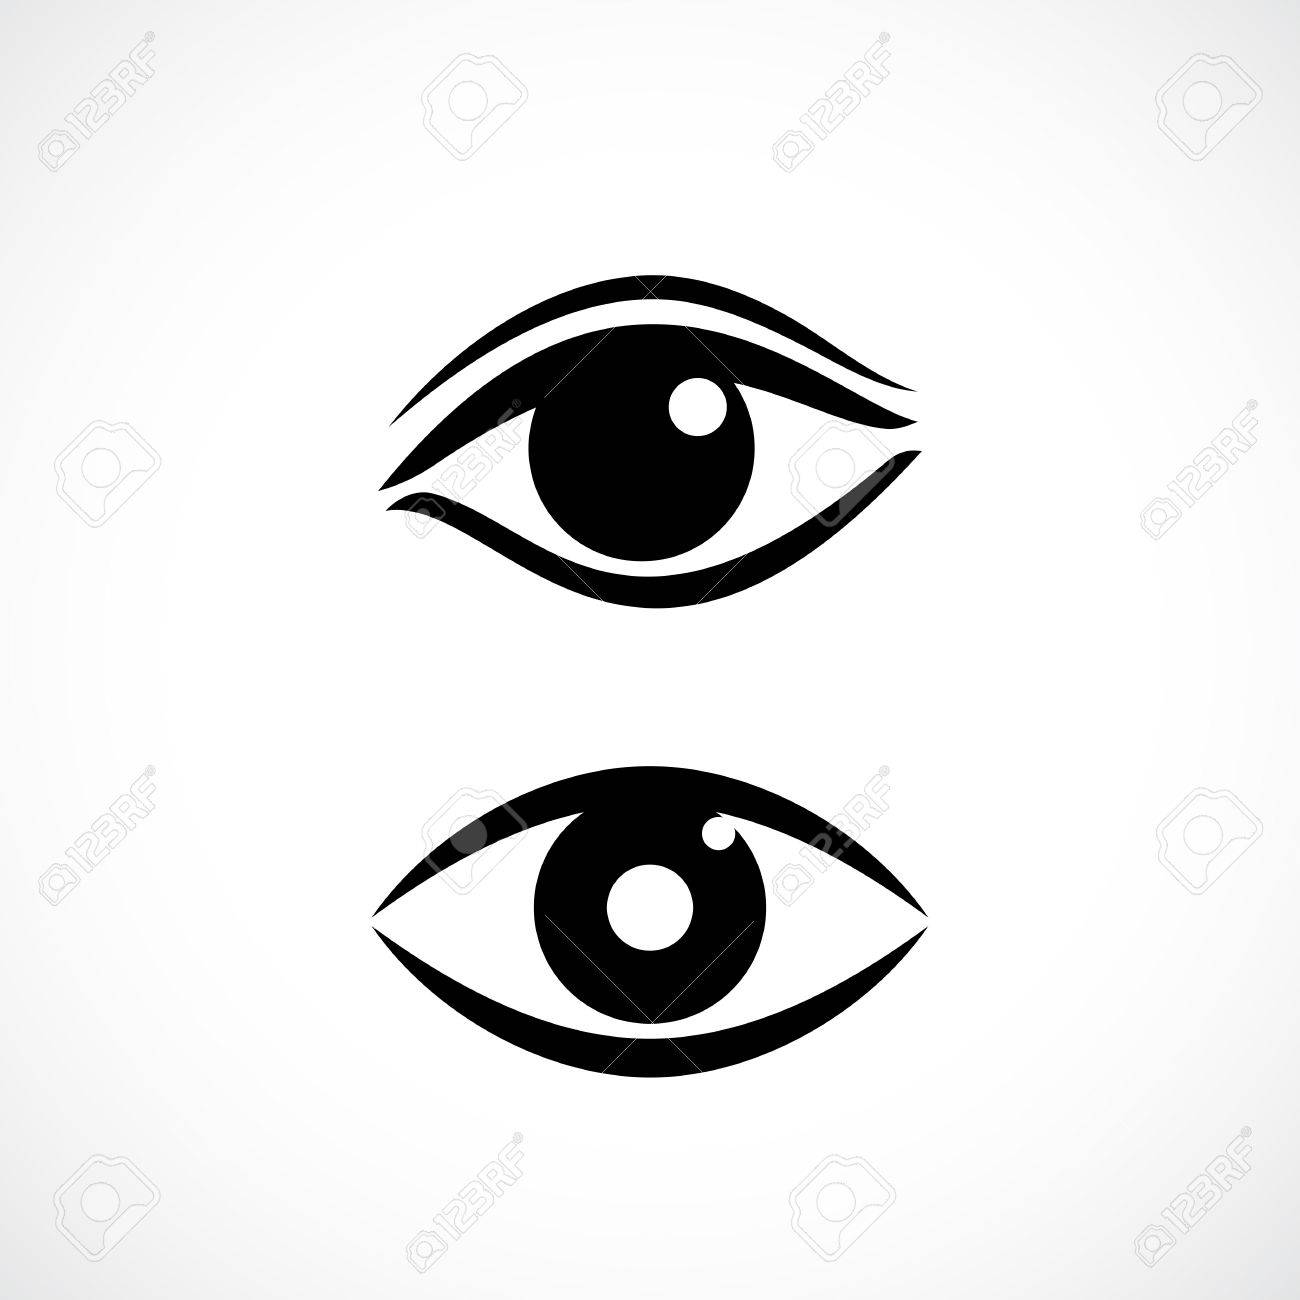 women eyes vector icon royalty free cliparts vectors and stock rh 123rf com eye vector free eye vector free download